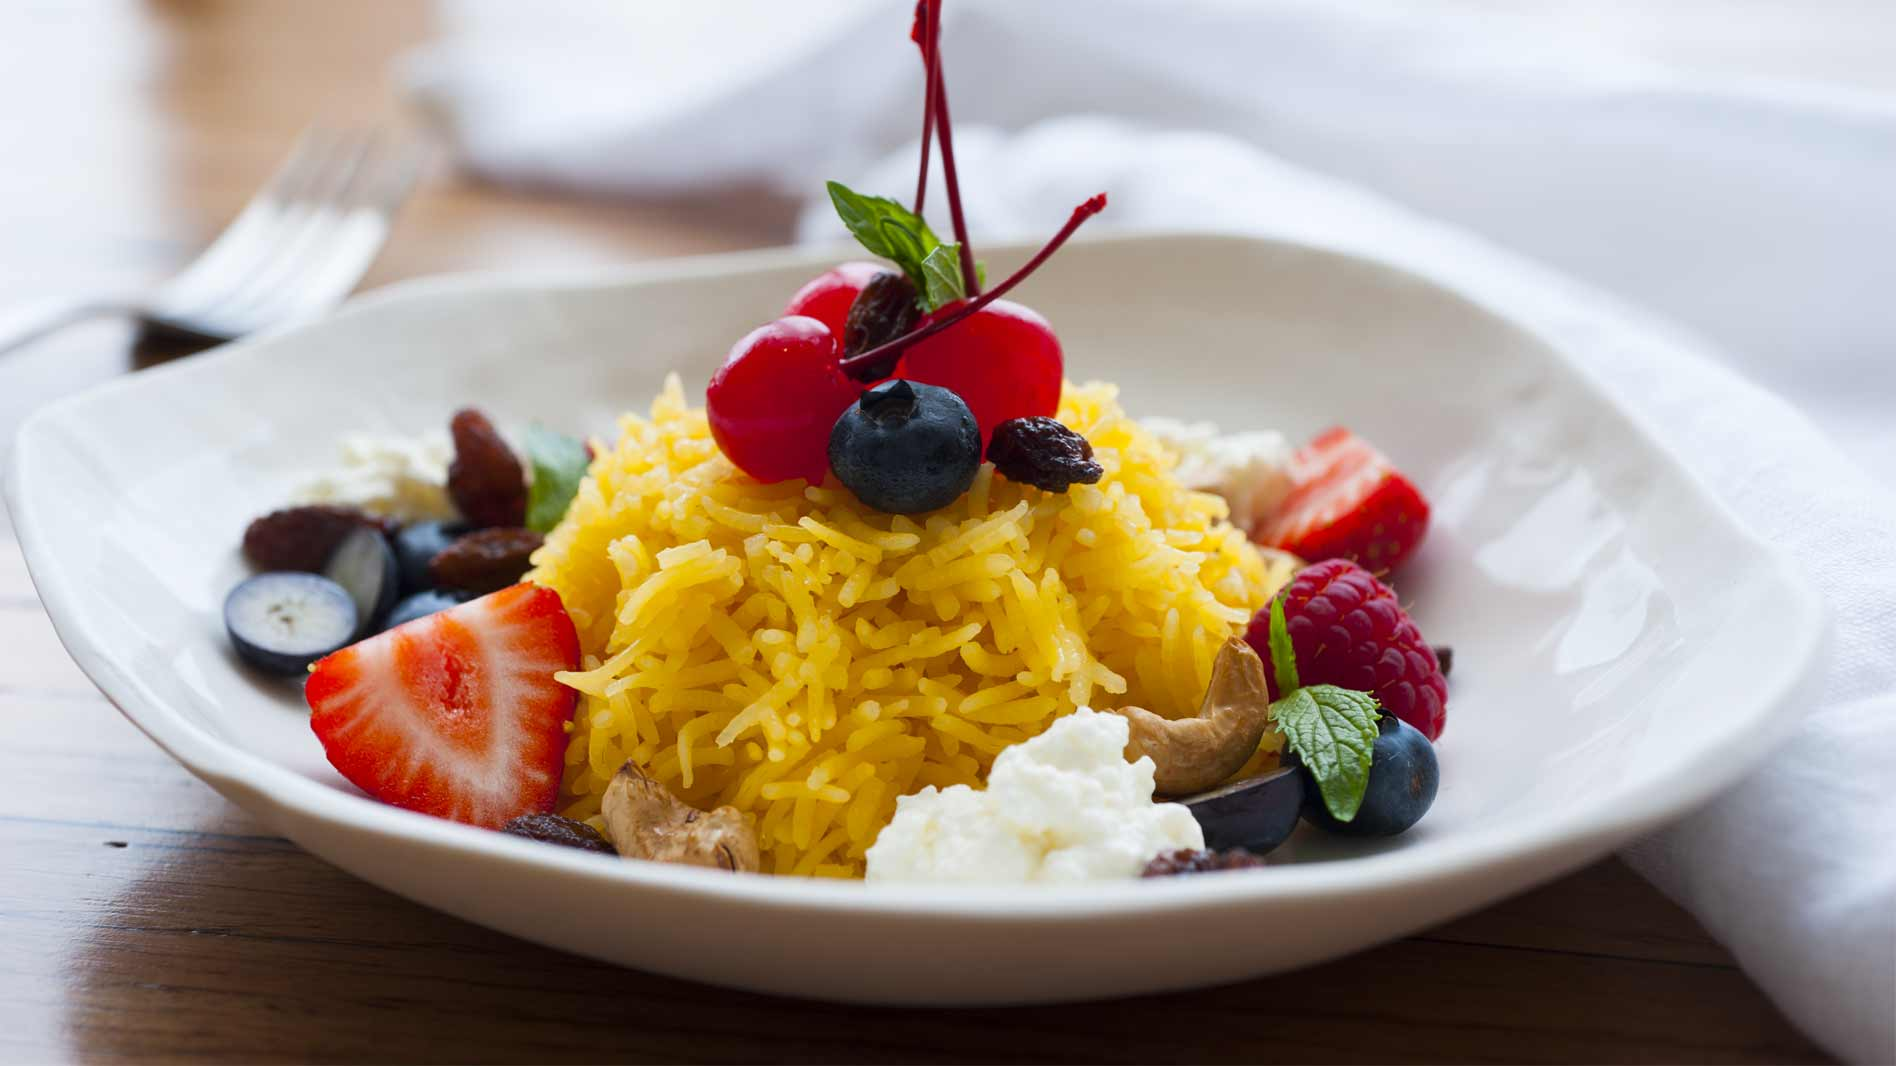 Zarda Rice with Mixed Berries and Cherries